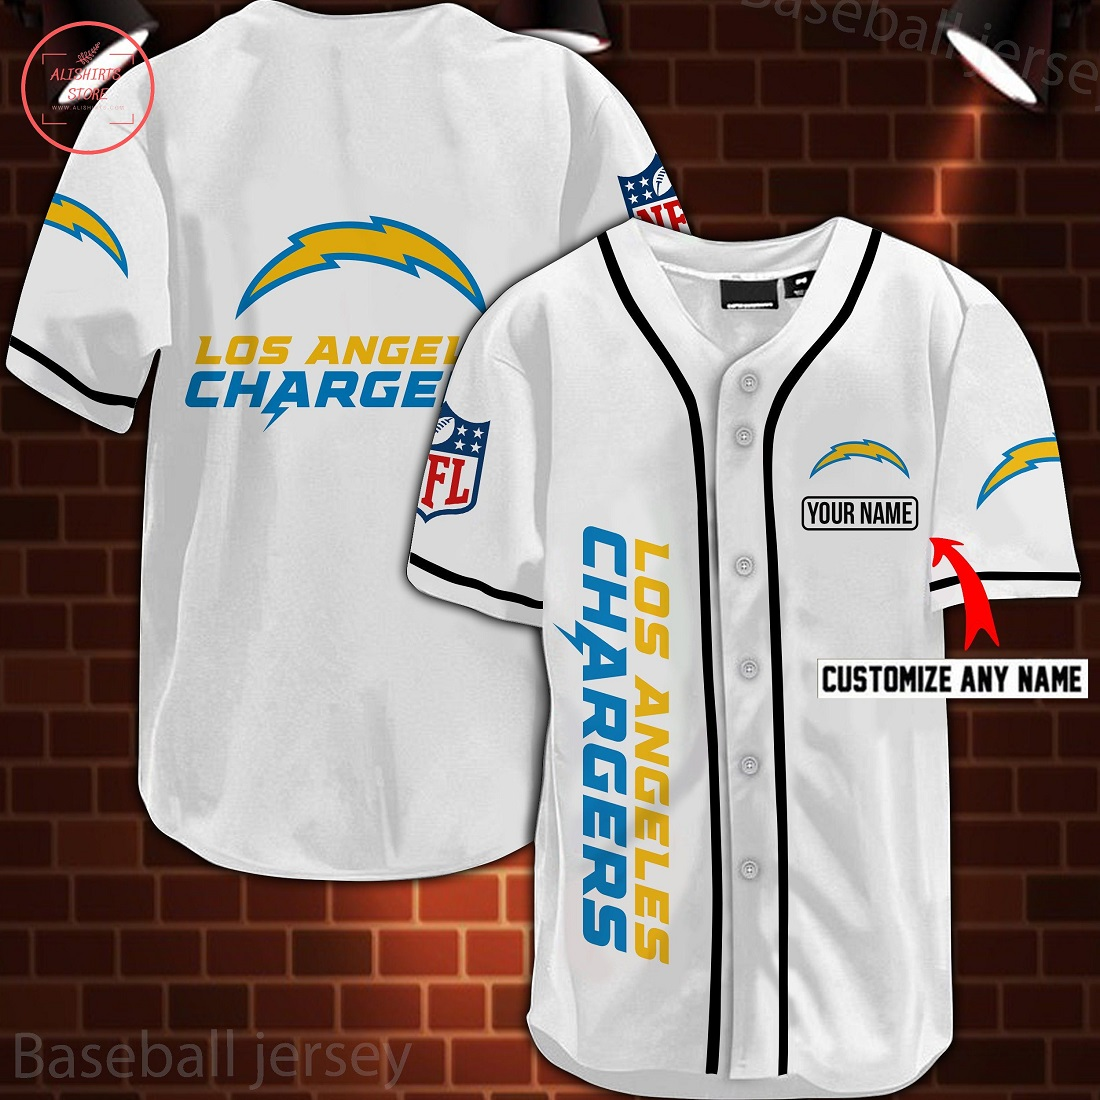 Nfl Los Angeles Chargers Personalized Baseball Jersey